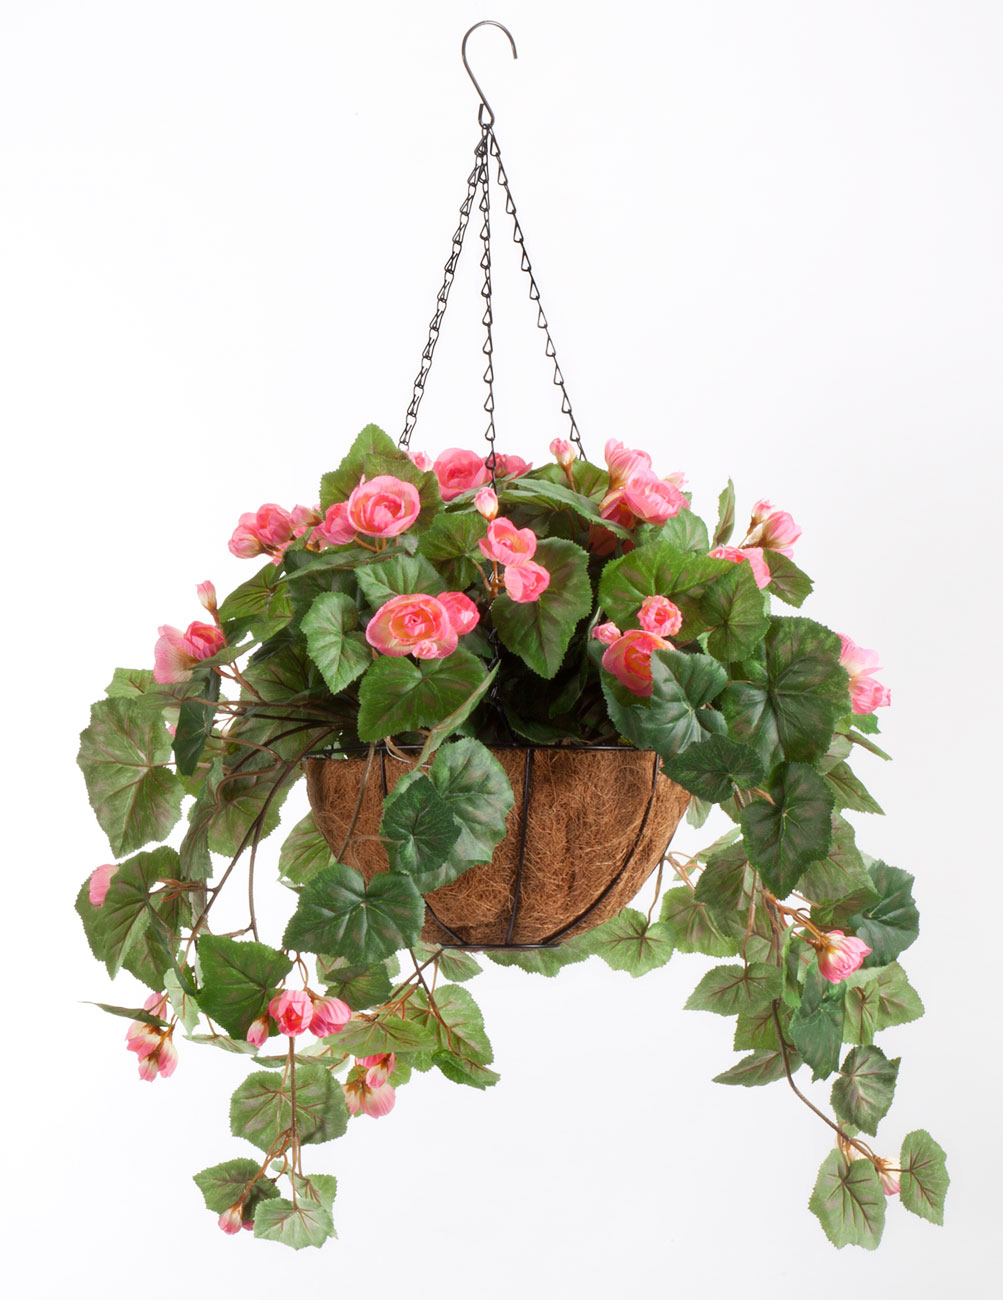 oakridge miles kimball fully assembled artificial begonia hanging basket 10 diameter and 18 chain pink polyester plastic flowers in metal and